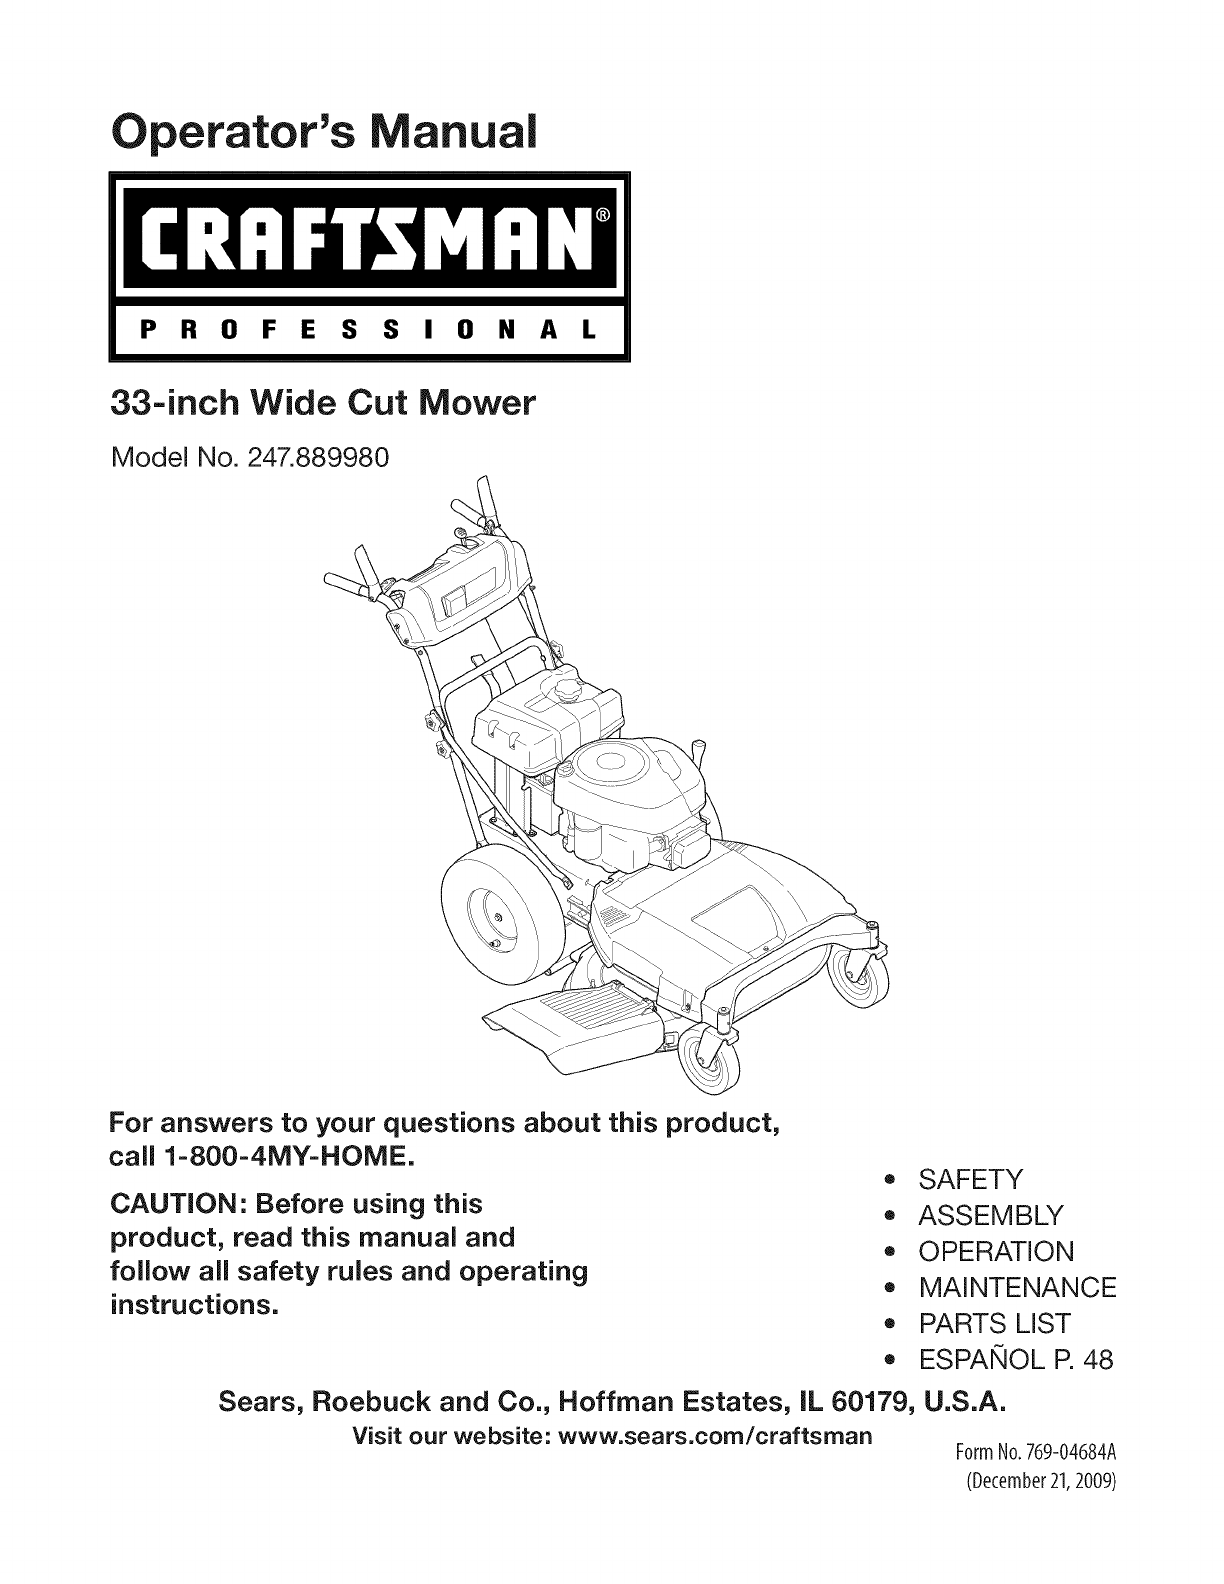 craftsman lawn mower 247 889980 user guide manualsonline com rh lawnandgarden manualsonline com craftsman owners manuals free craftsman owners manual 114a1752